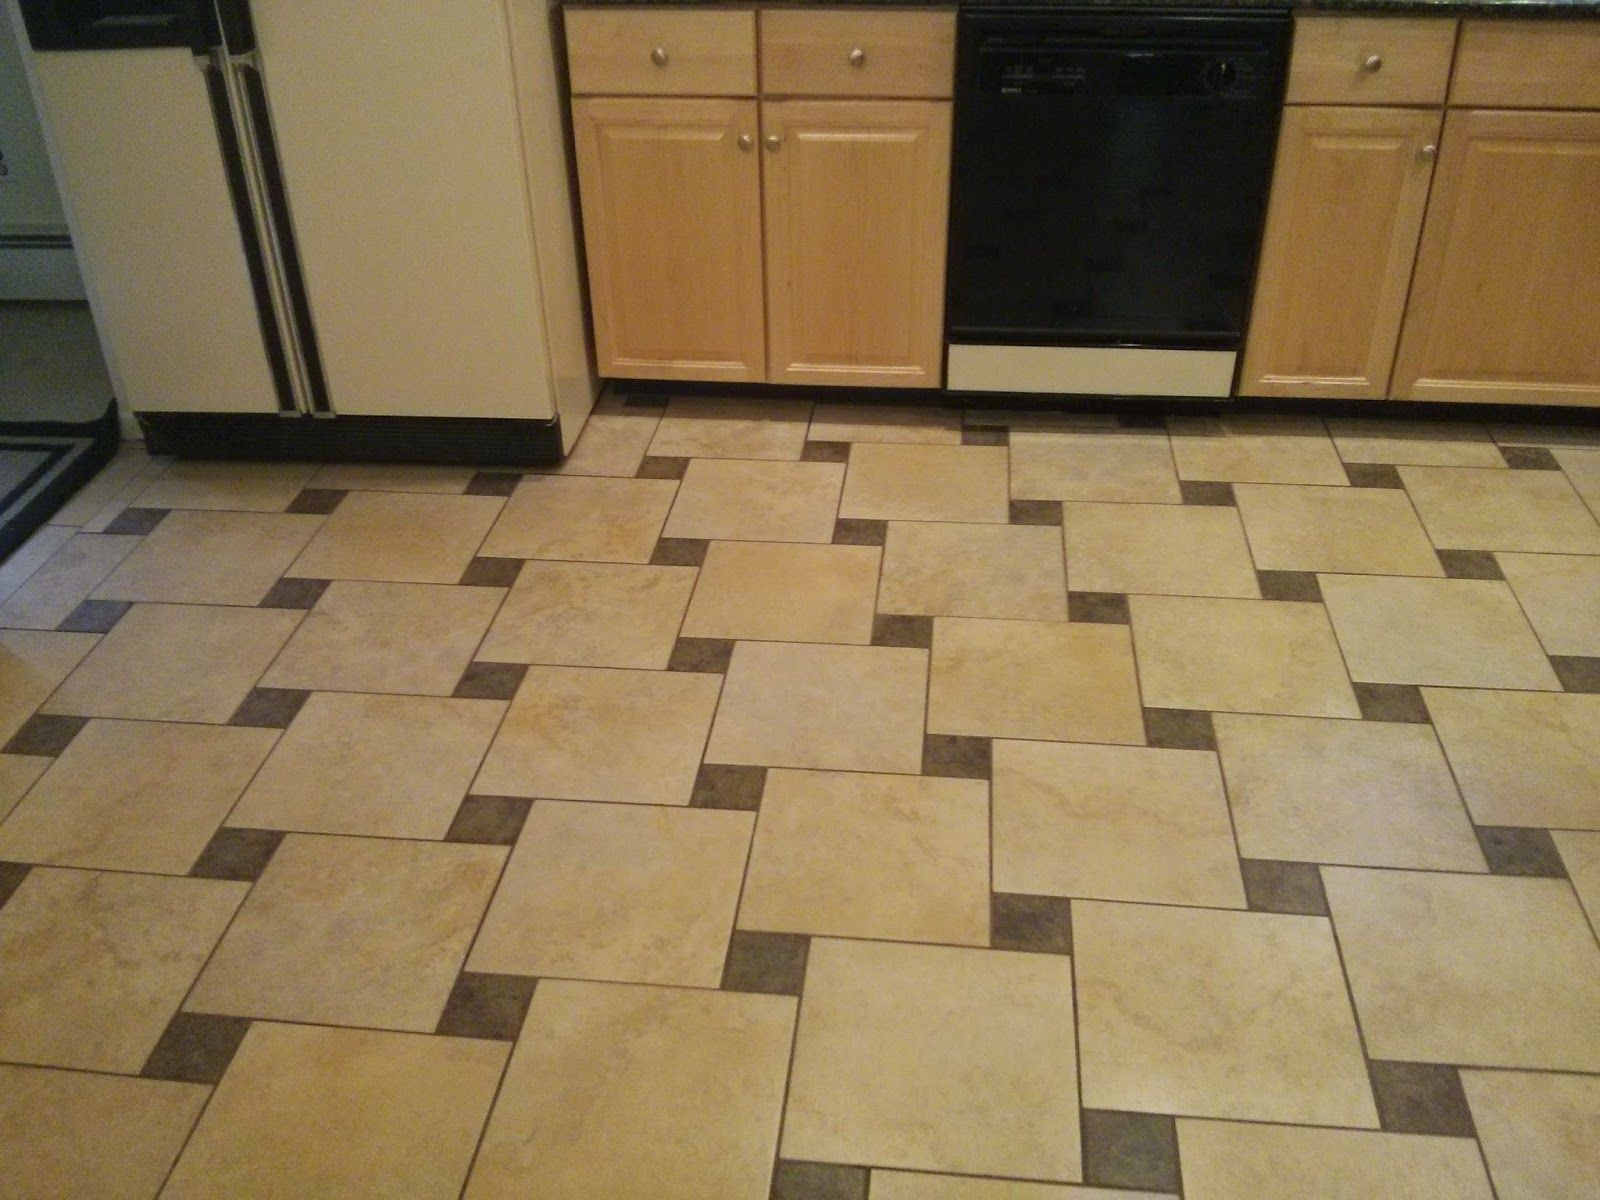 Floor Tile Patterns 12x12 4x4 Google Search Patterned Floor Tiles Tile Floor Tile Patterns